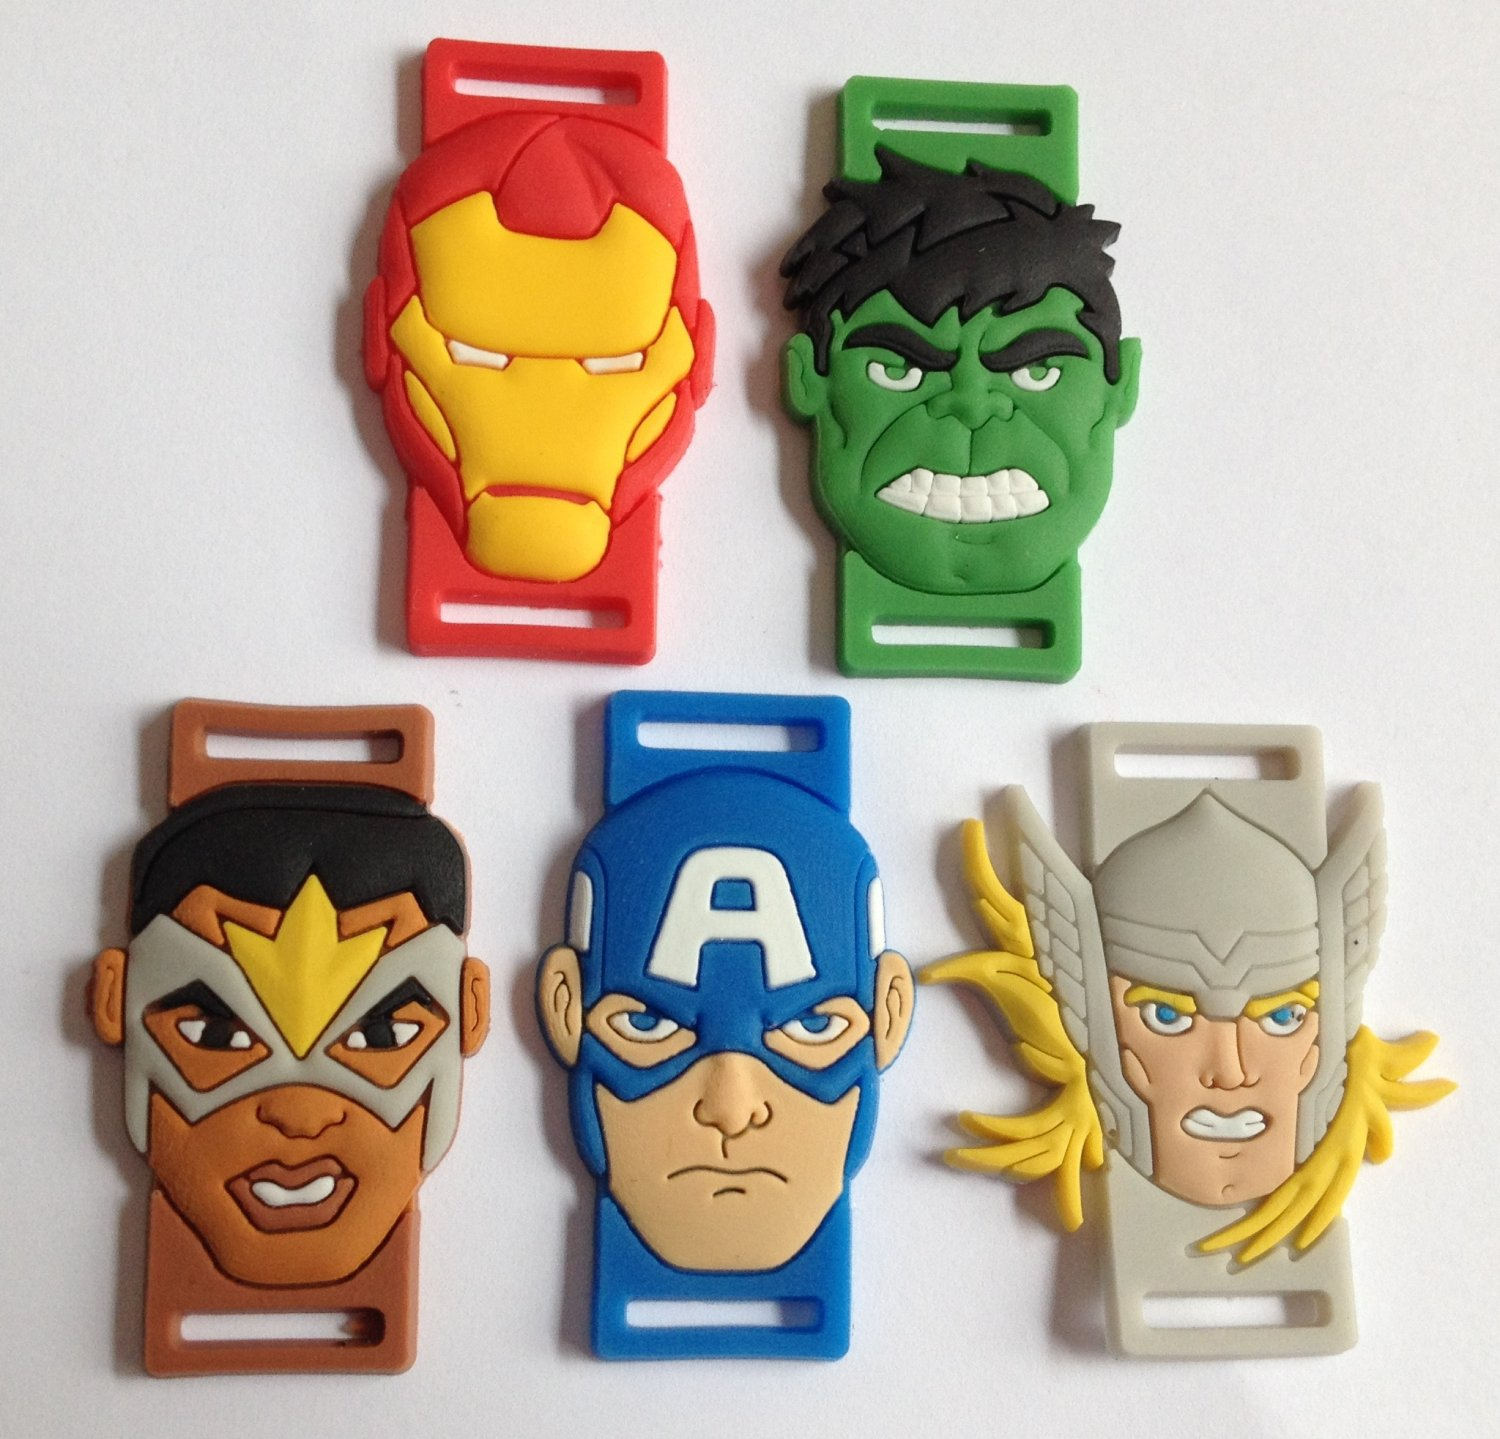 PVC Shoe Lace Cartoon Character Inserts - Avengers